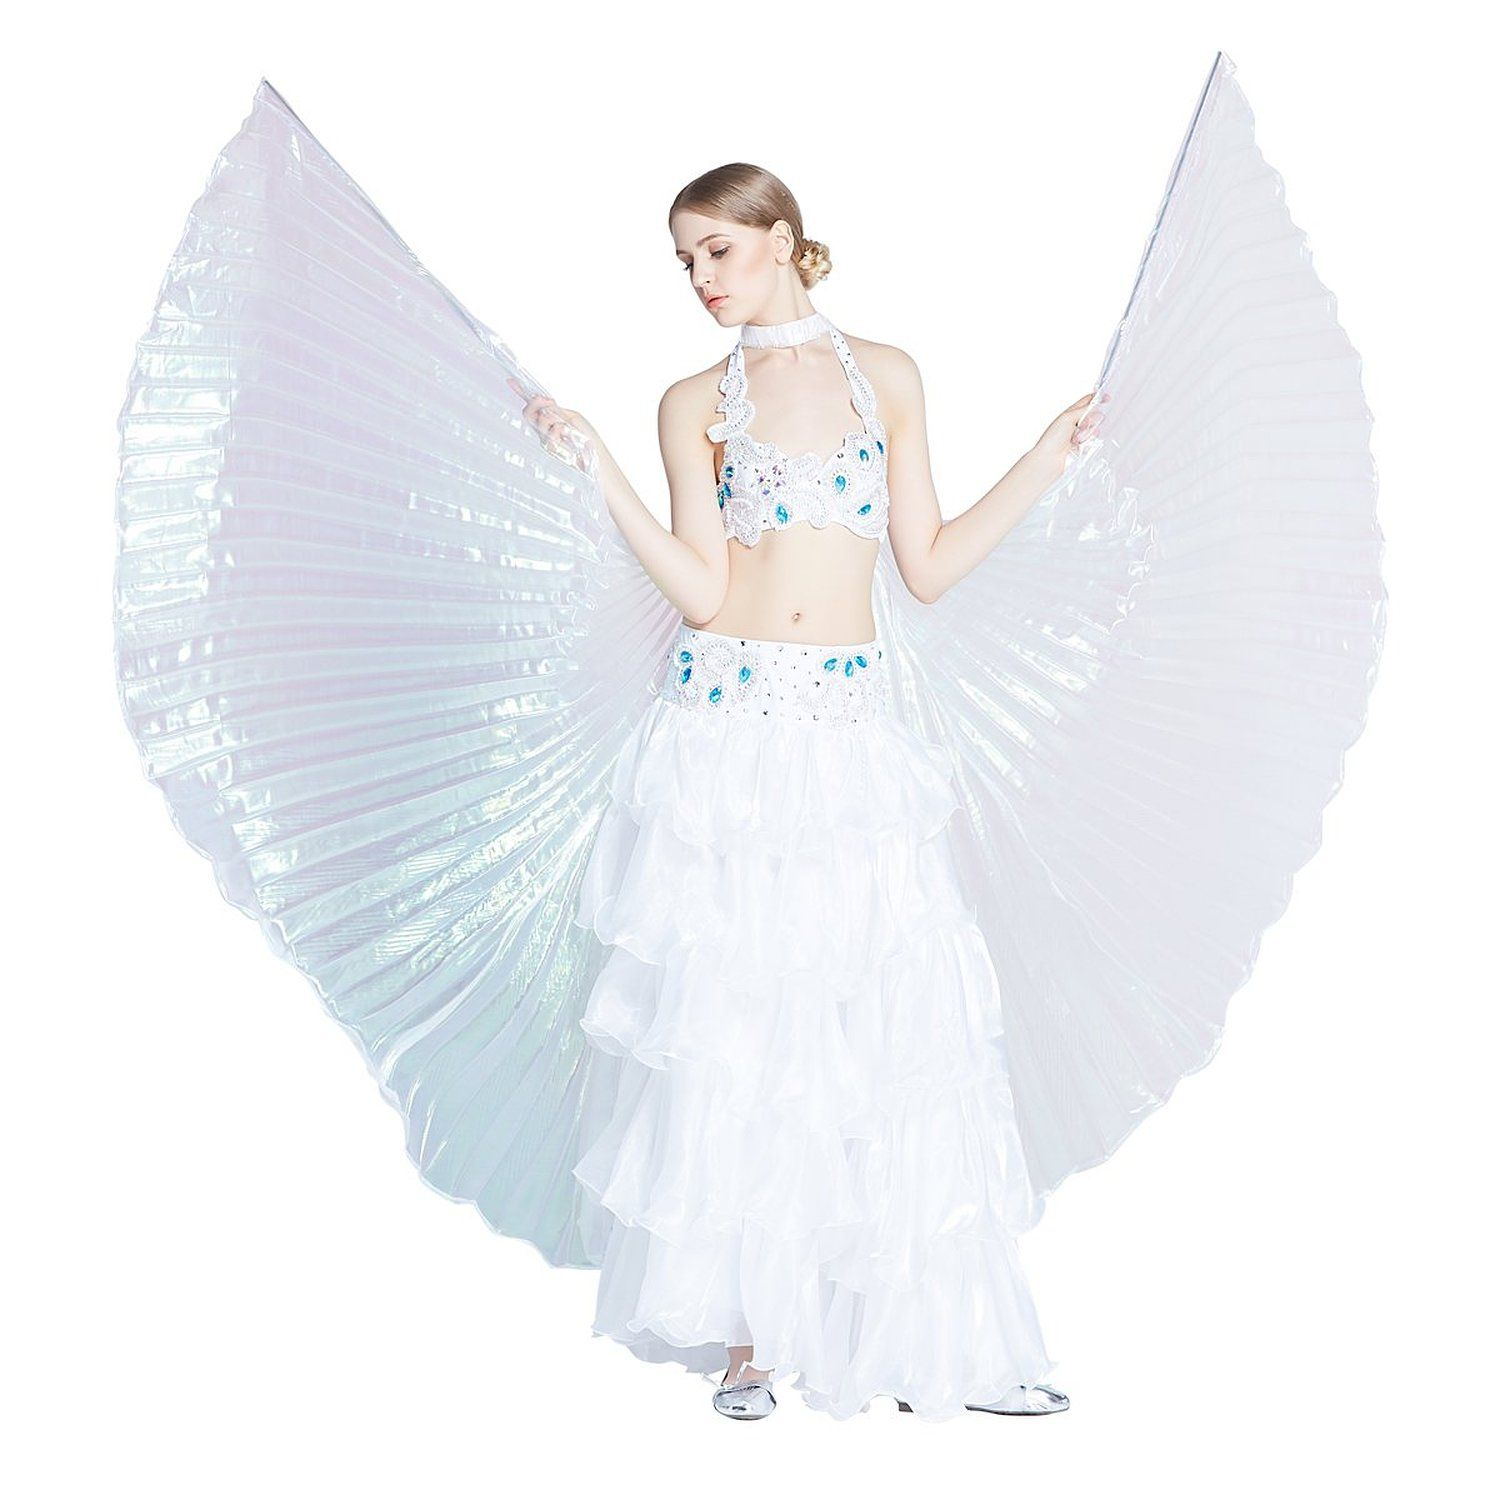 Dance Fairy Belly Dance White Colorful Yarn Iridescent Isis Wings